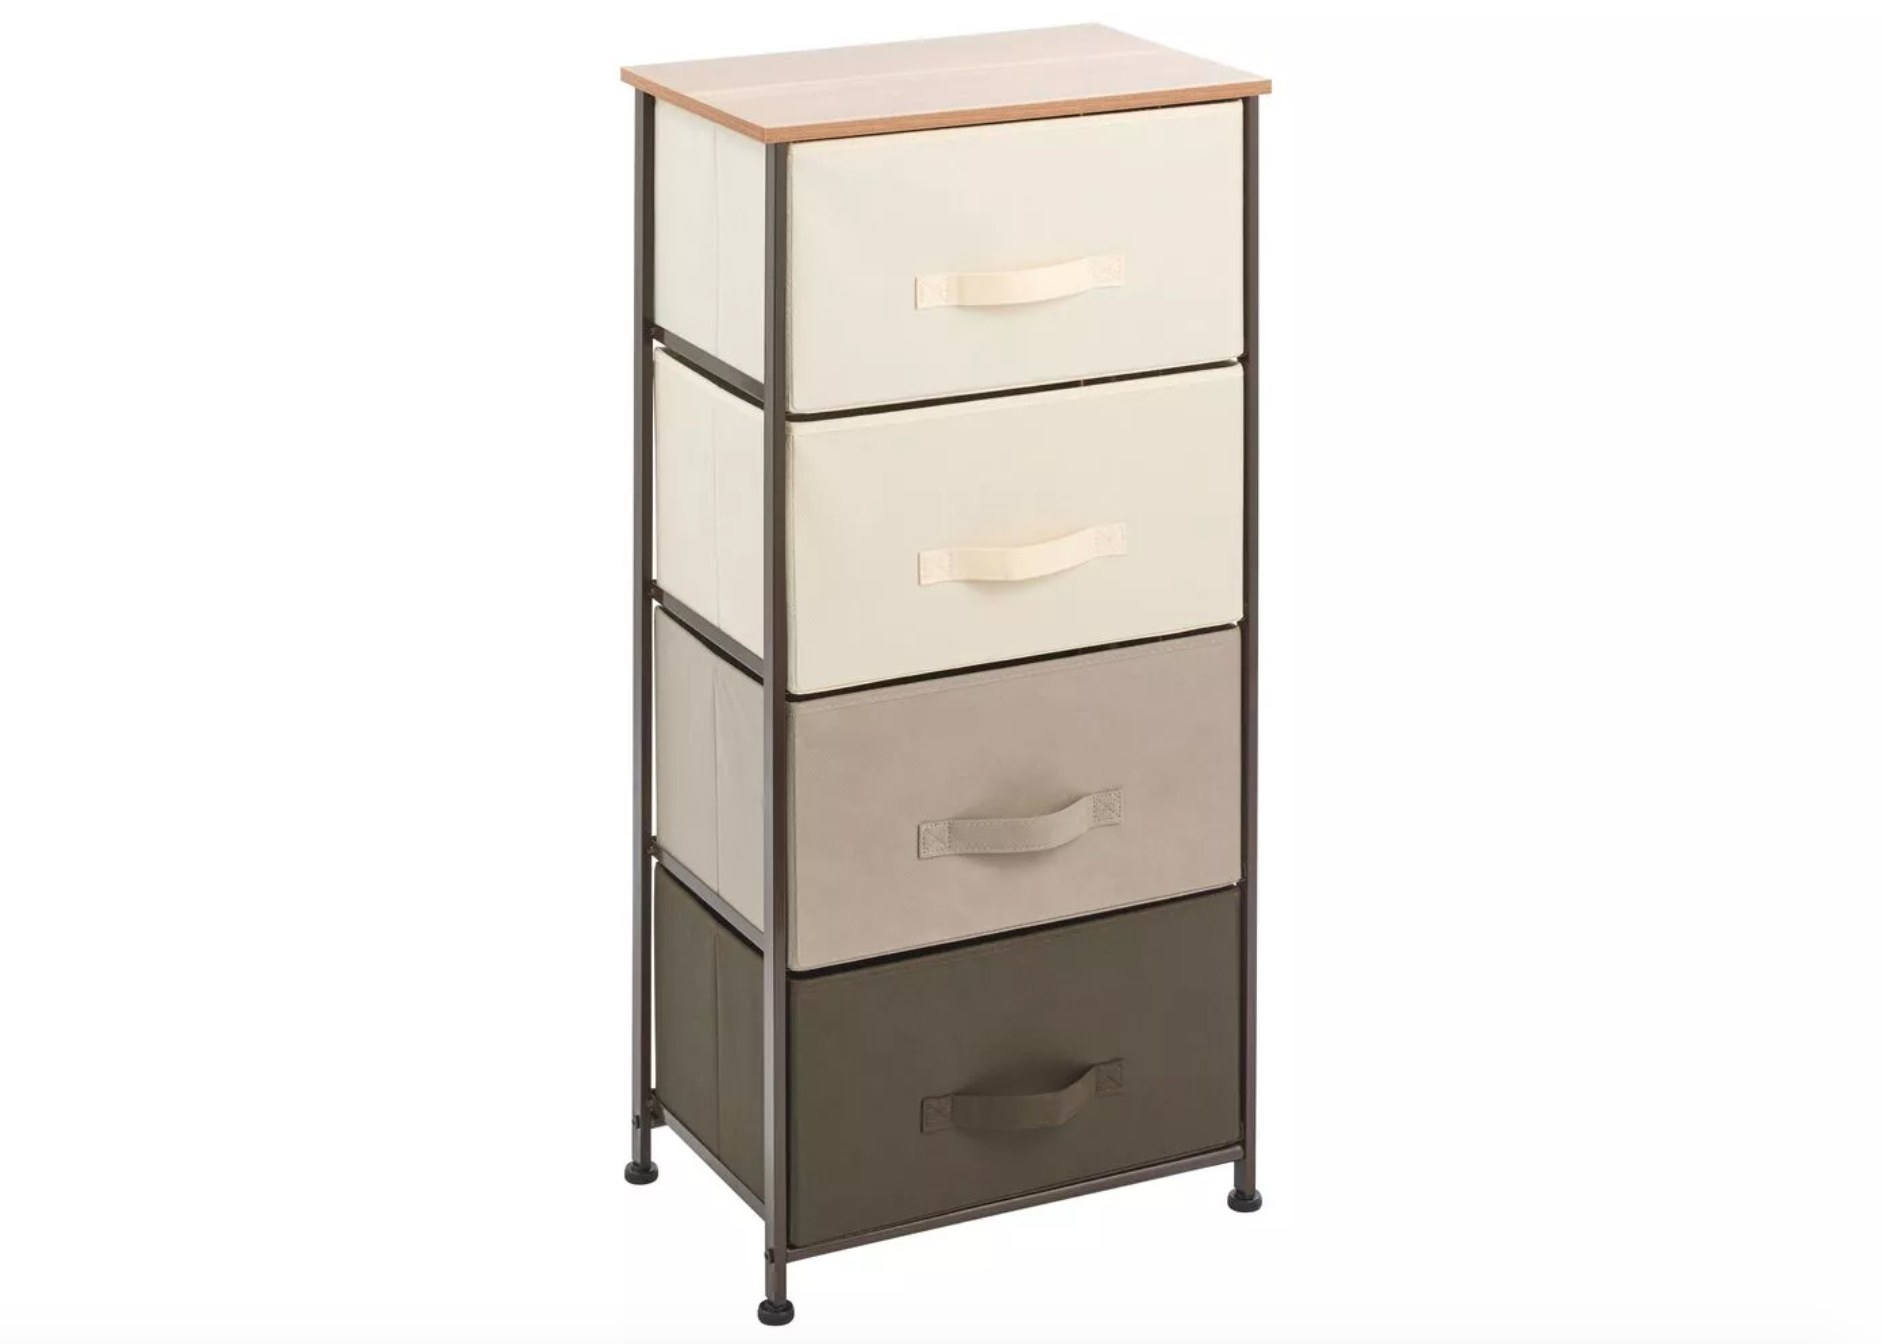 The vertical dresser with four drawers